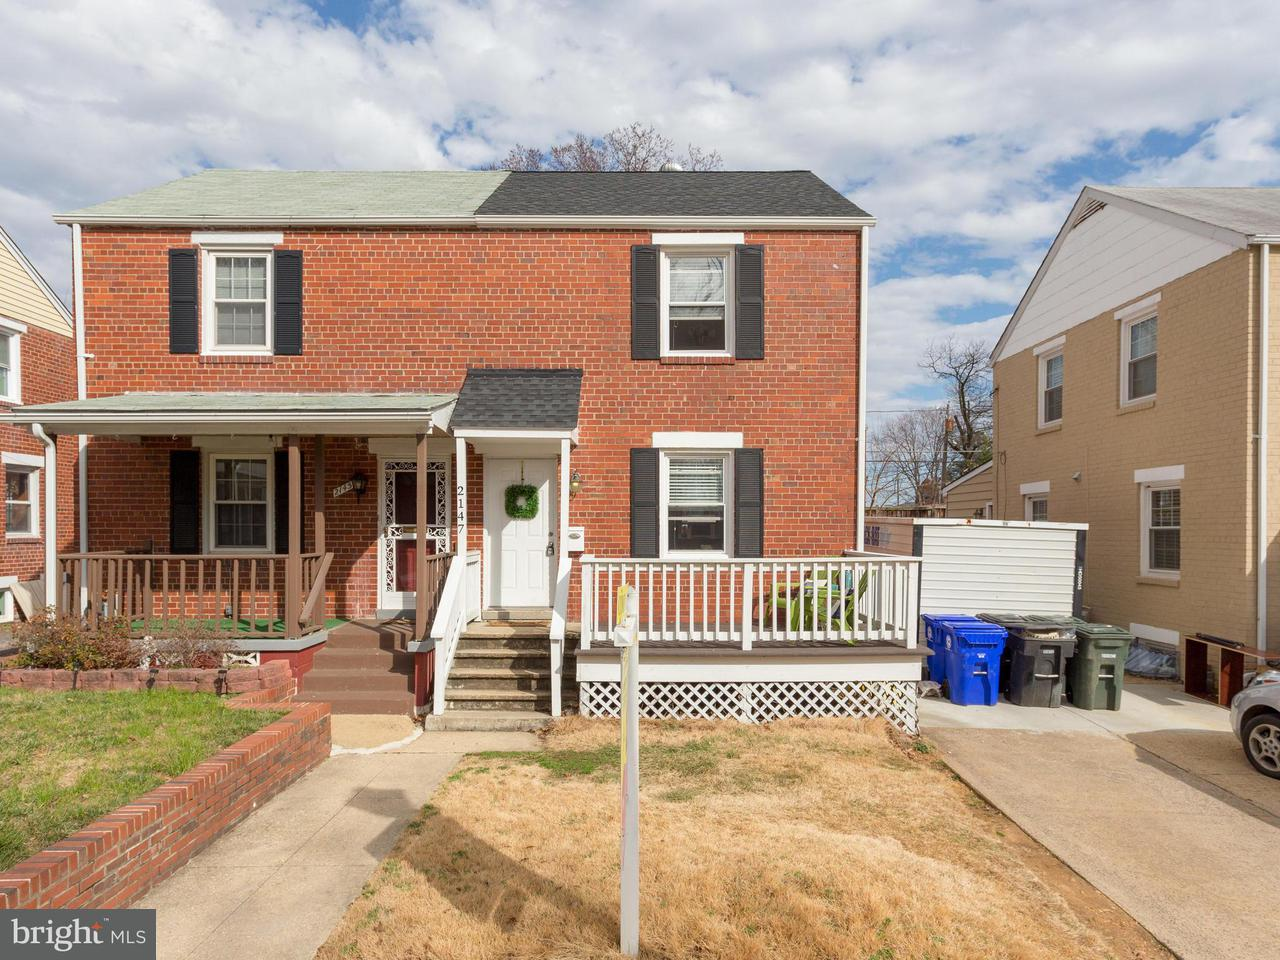 Duplex for Sale at 2147 Pollard St S 2147 Pollard St S Arlington, Virginia 22204 United States